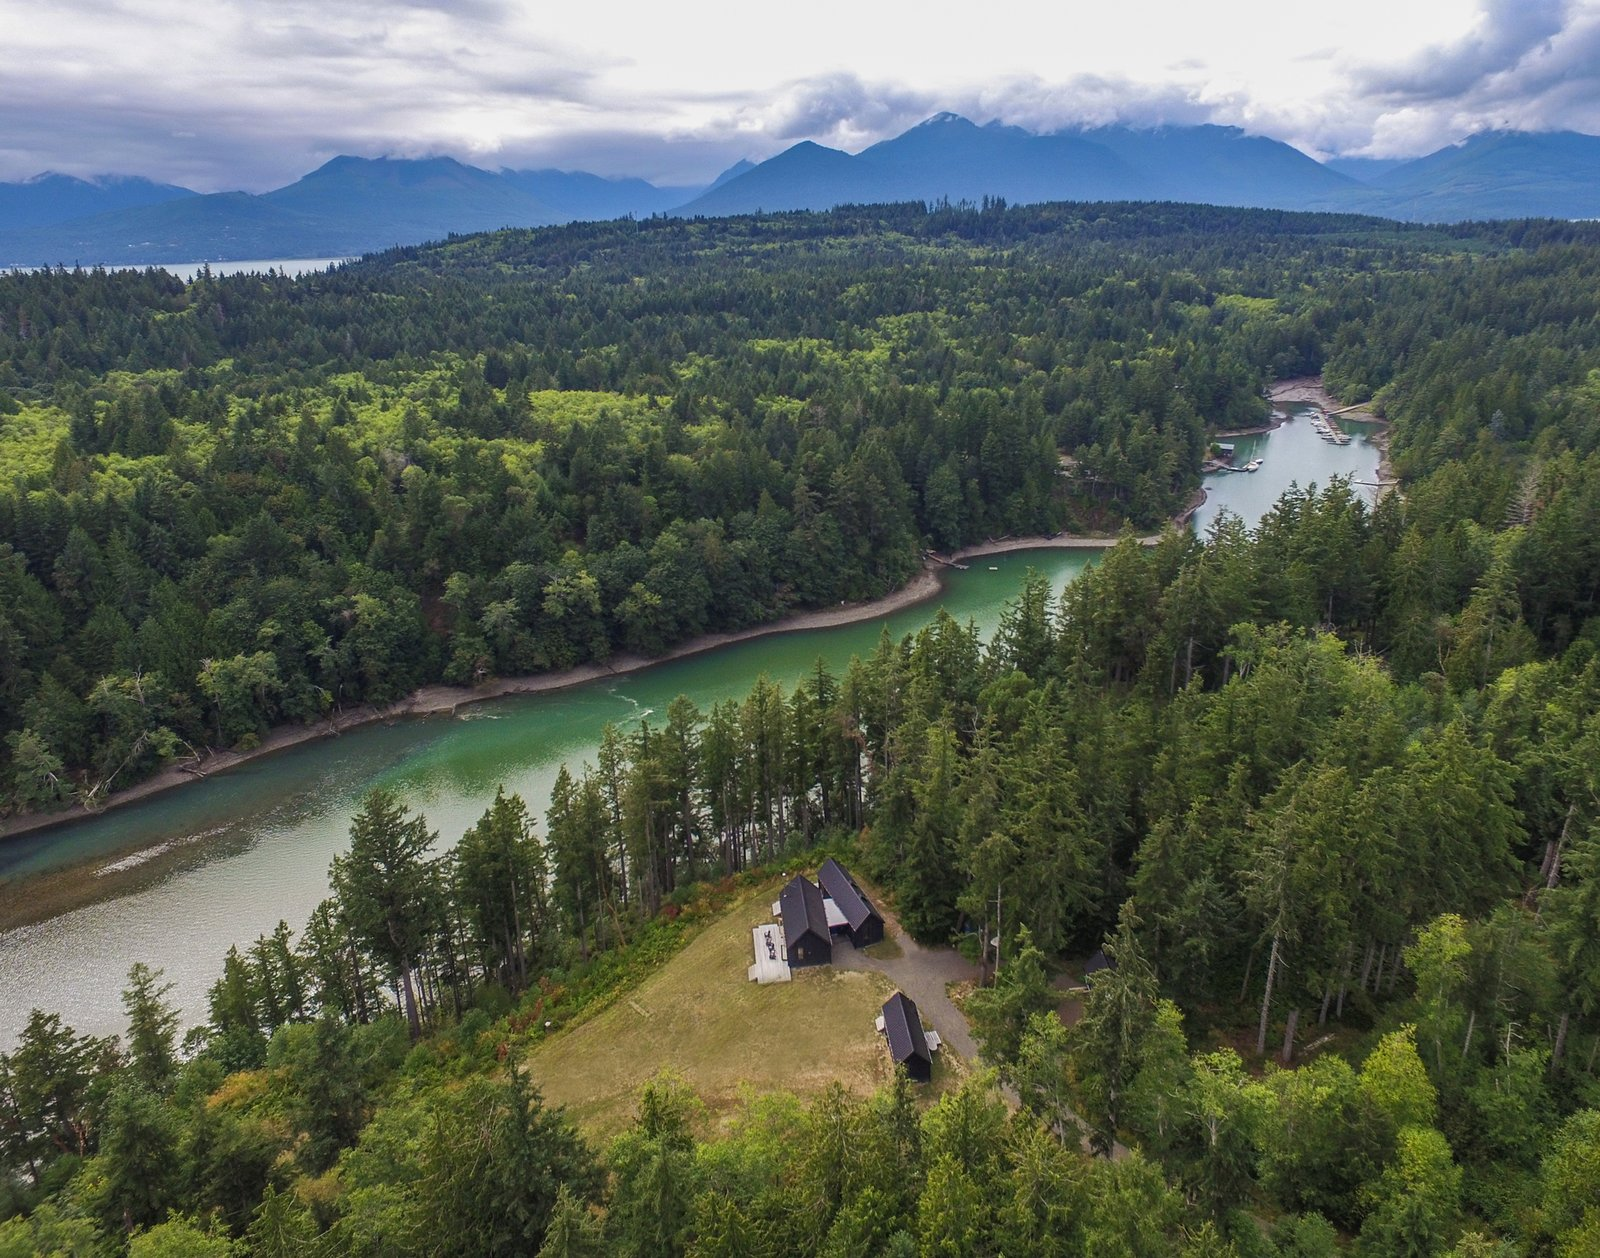 An existing meadow provided an ideal location for the three structures. Set high above the water, the clearing is surrounded by a dense forest of Douglas fir.